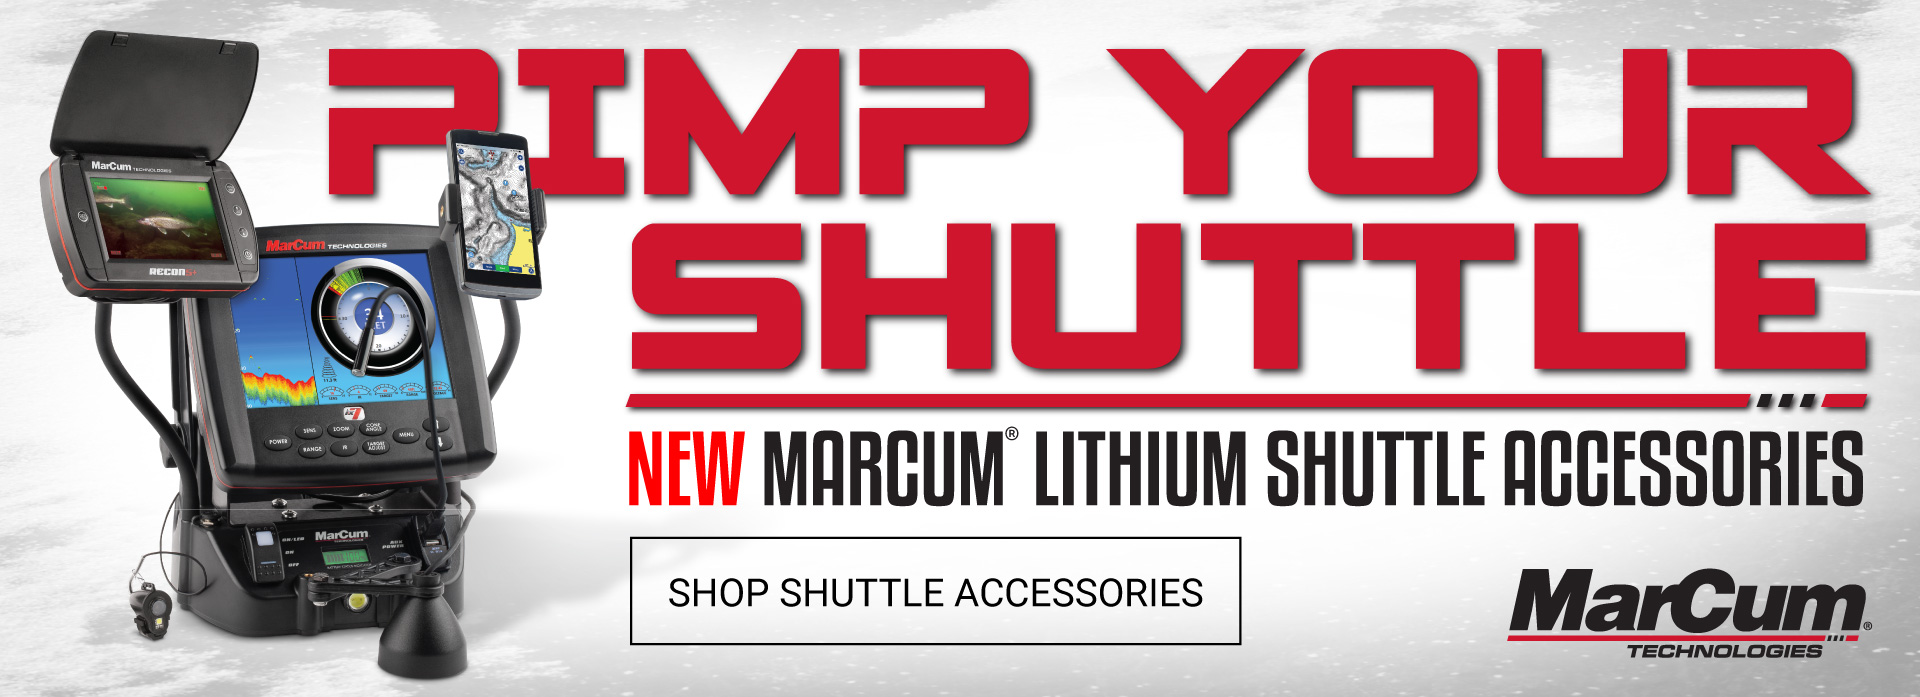 Lithium Shuttle Accessories